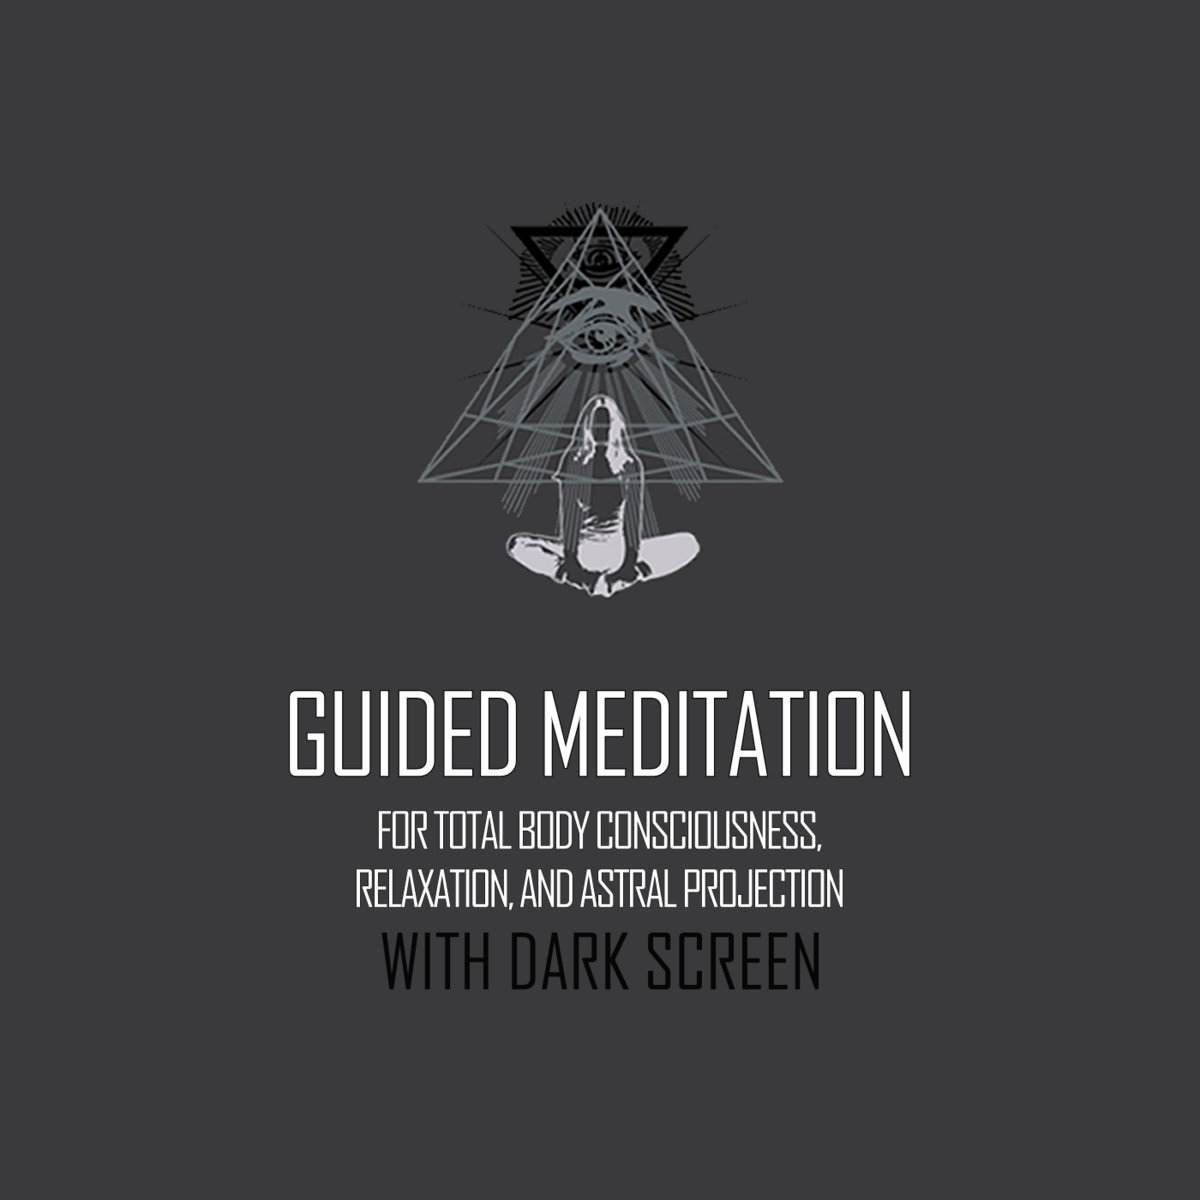 Guided Meditation for Total Body Consciousness, Relaxation, and